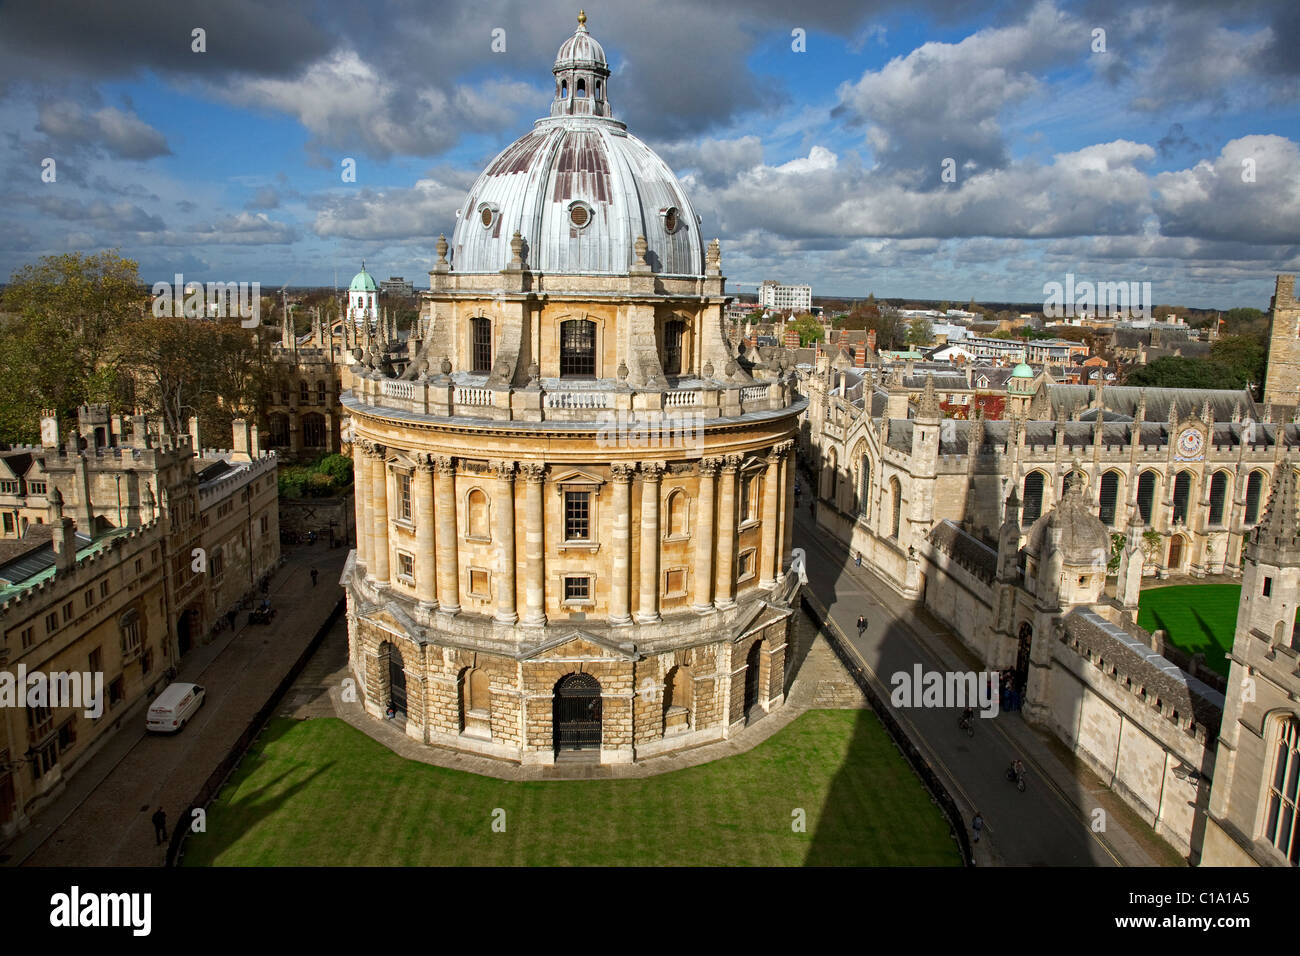 Radcliffe Camera at Oxford, Oxfordshire, England, UK - Stock Image